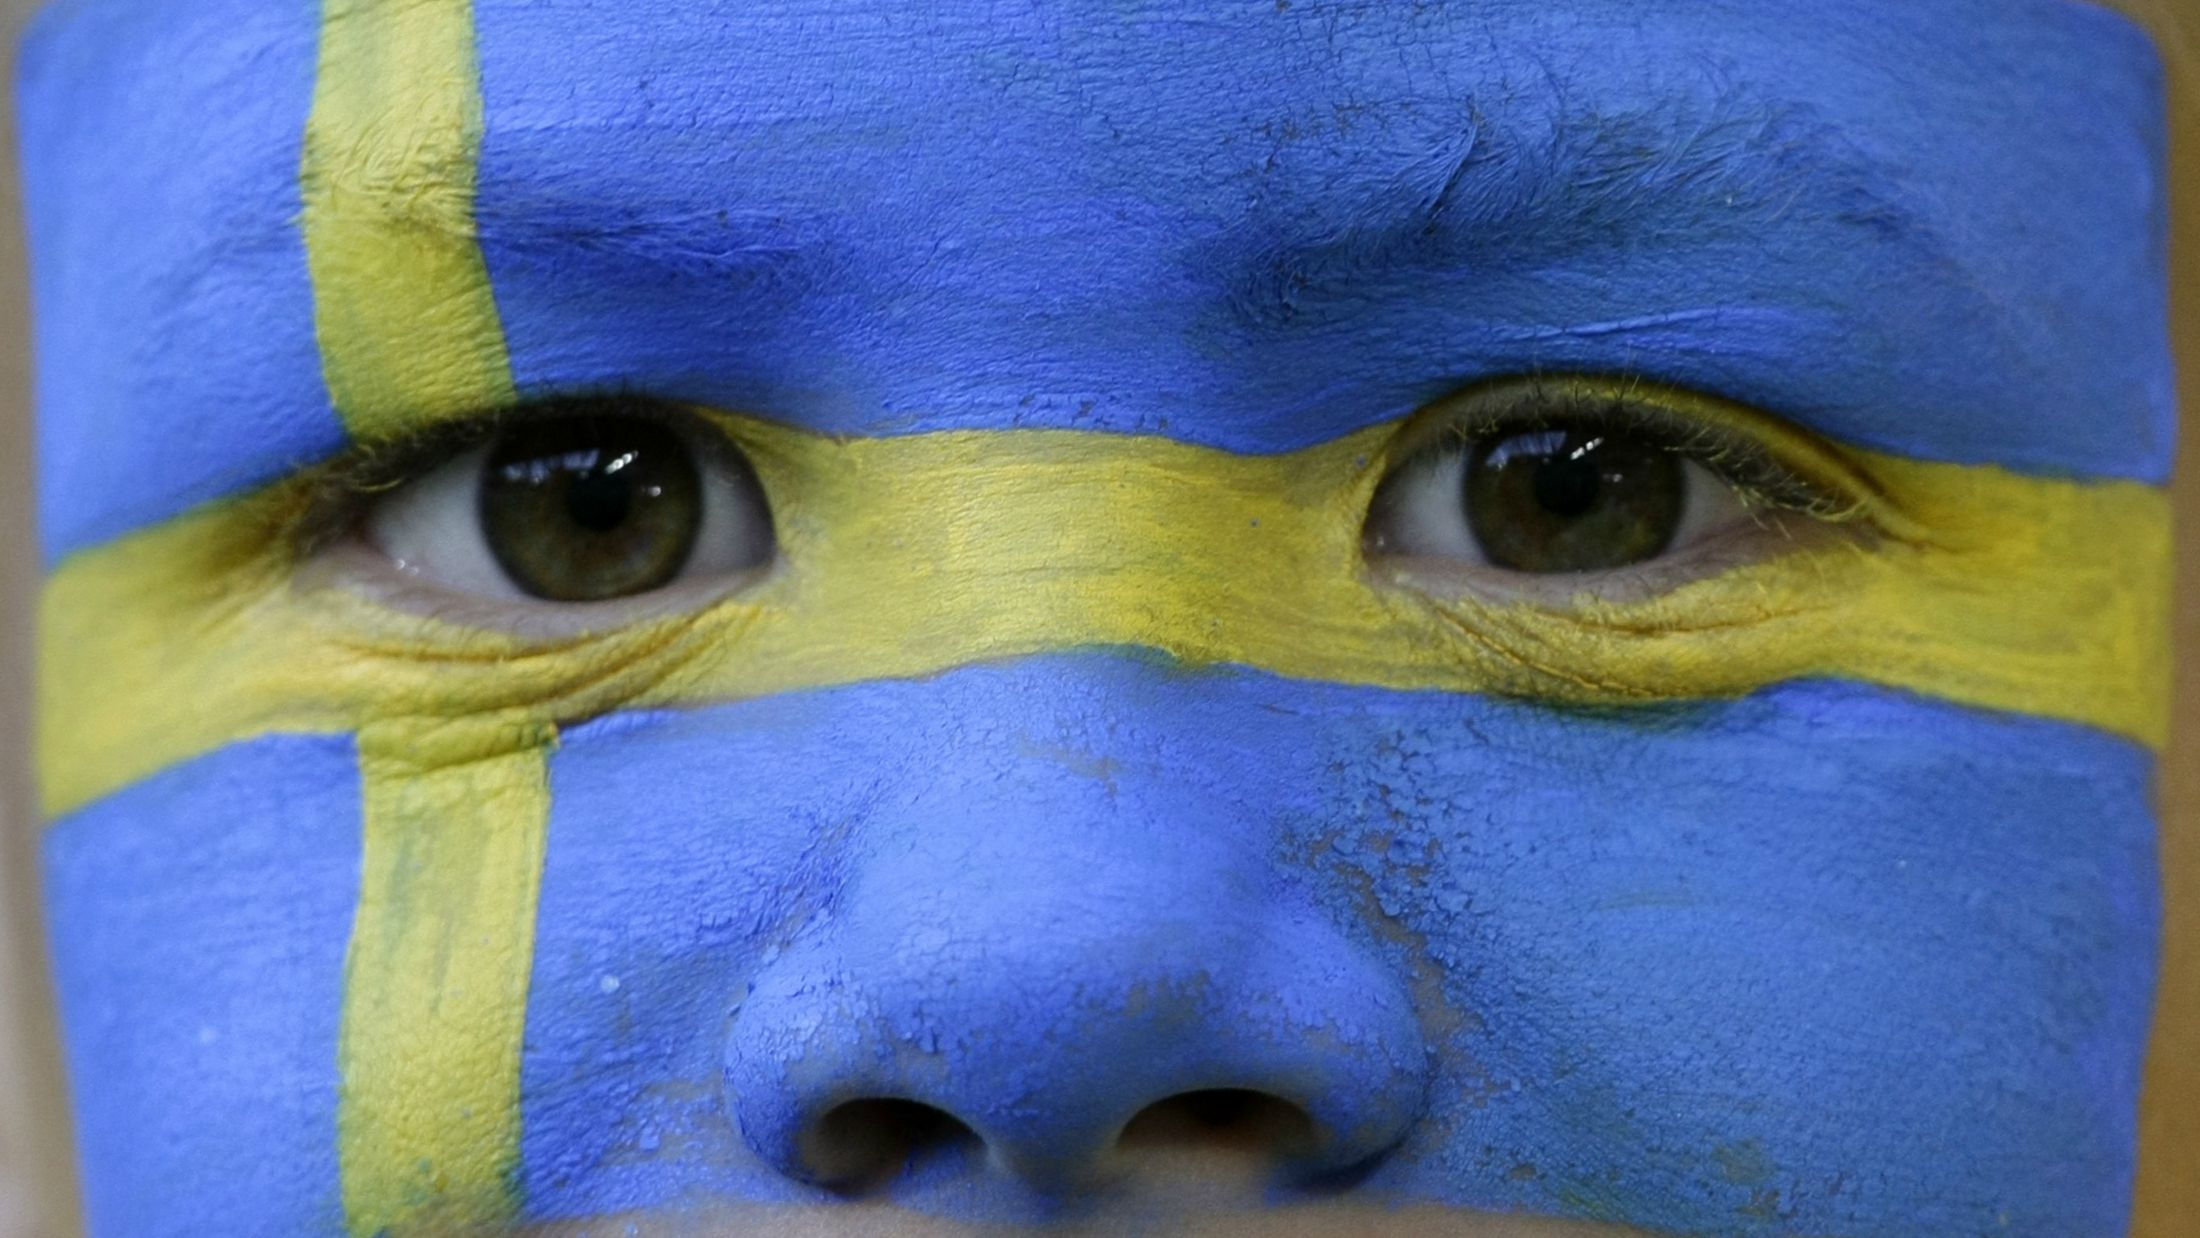 A young Sweden fan waits for the start of their Group D Euro 2008 soccer match against Russia at Tivoli Neu stadium in Innsbruck, June 18, 2008. REUTERS/Michaela Rehle (AUSTRIA) MOBILE OUT. EDITORIAL USE ONLY